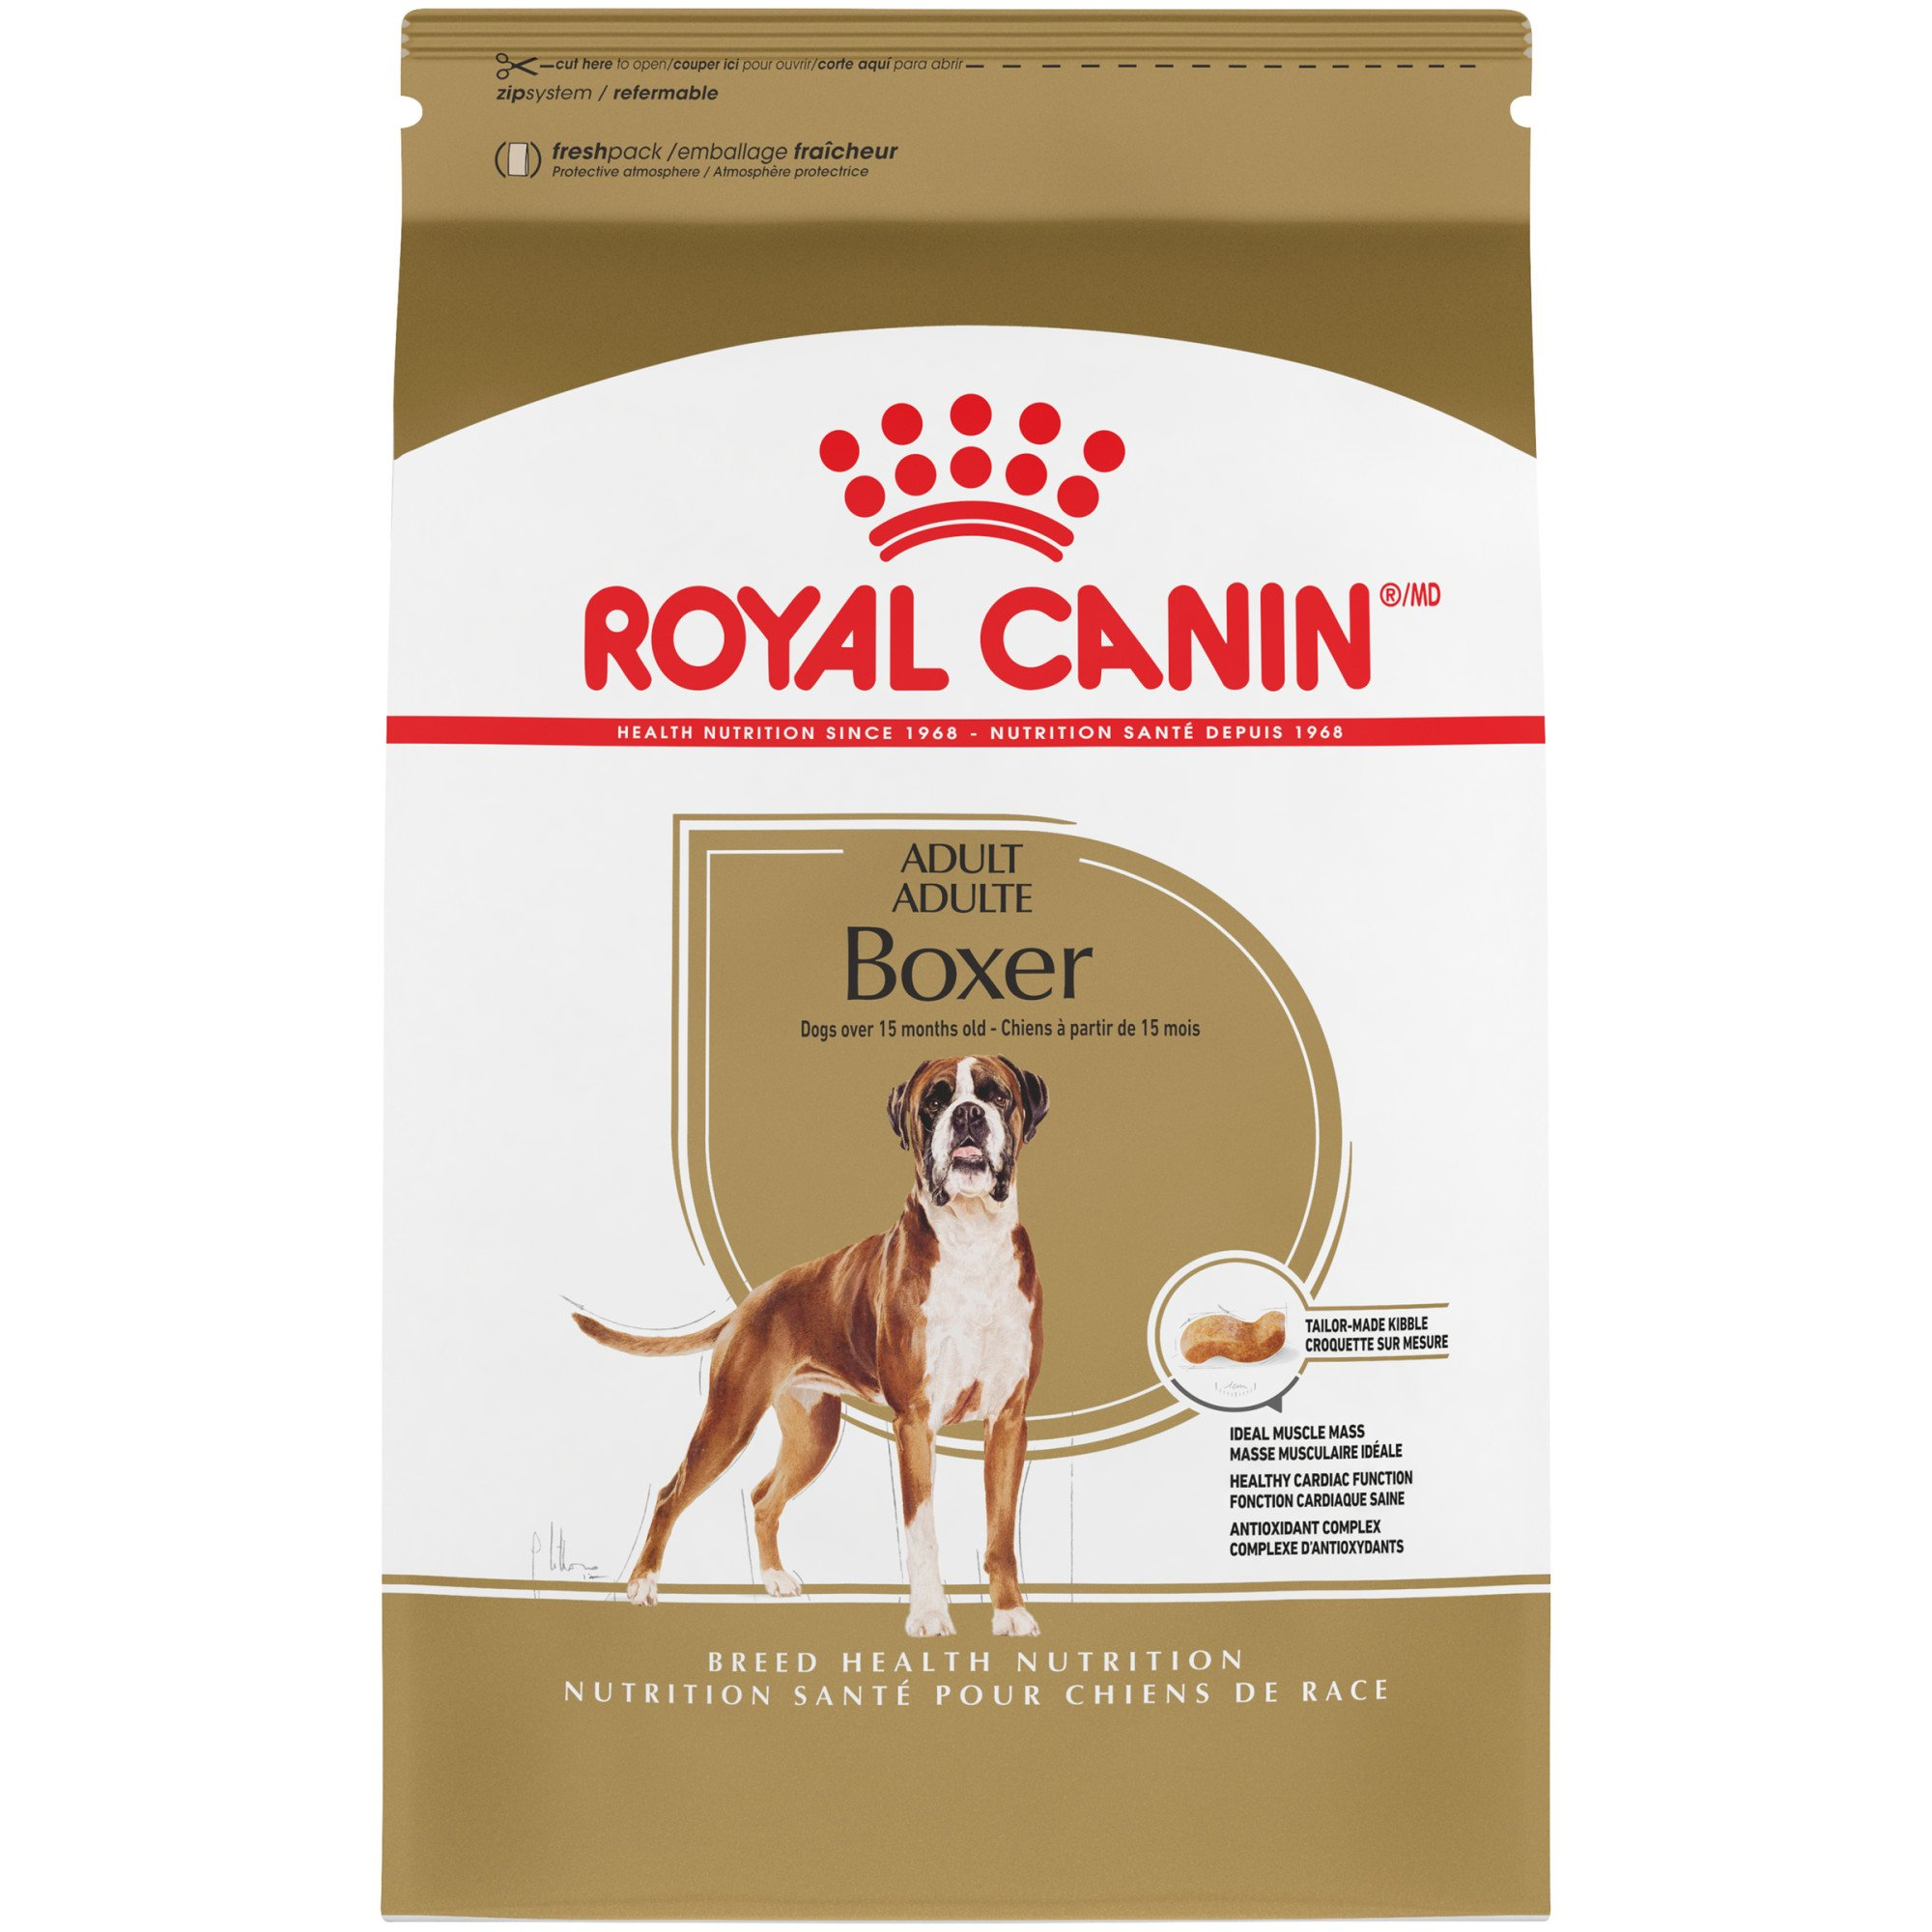 Royal Canin Breed Health Nutrition Boxer Adult Dry Dog Food, 17 lbs.